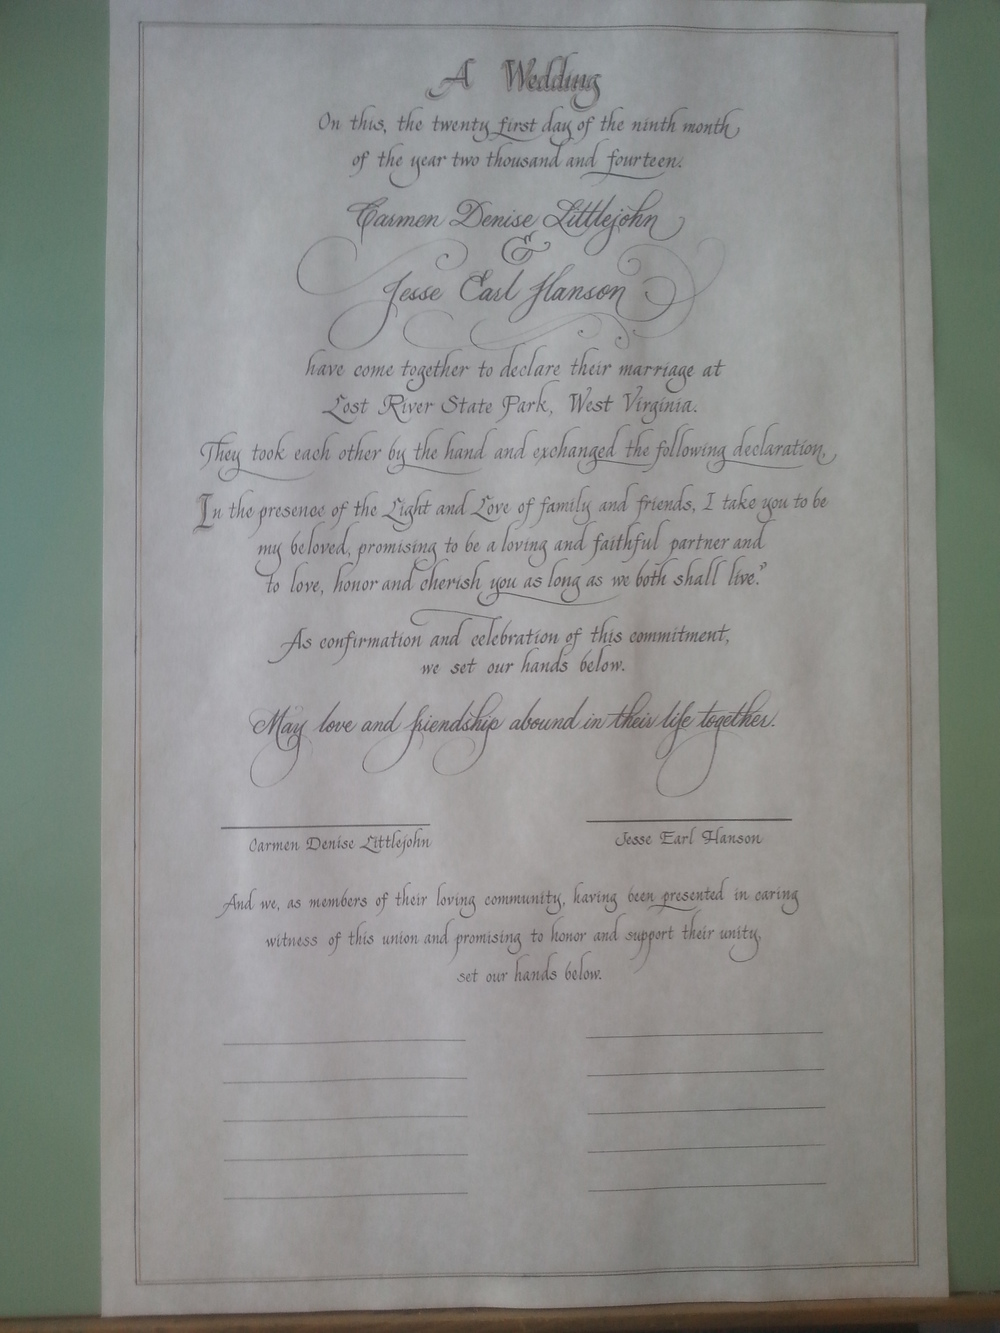 Wedding Contract.jpg